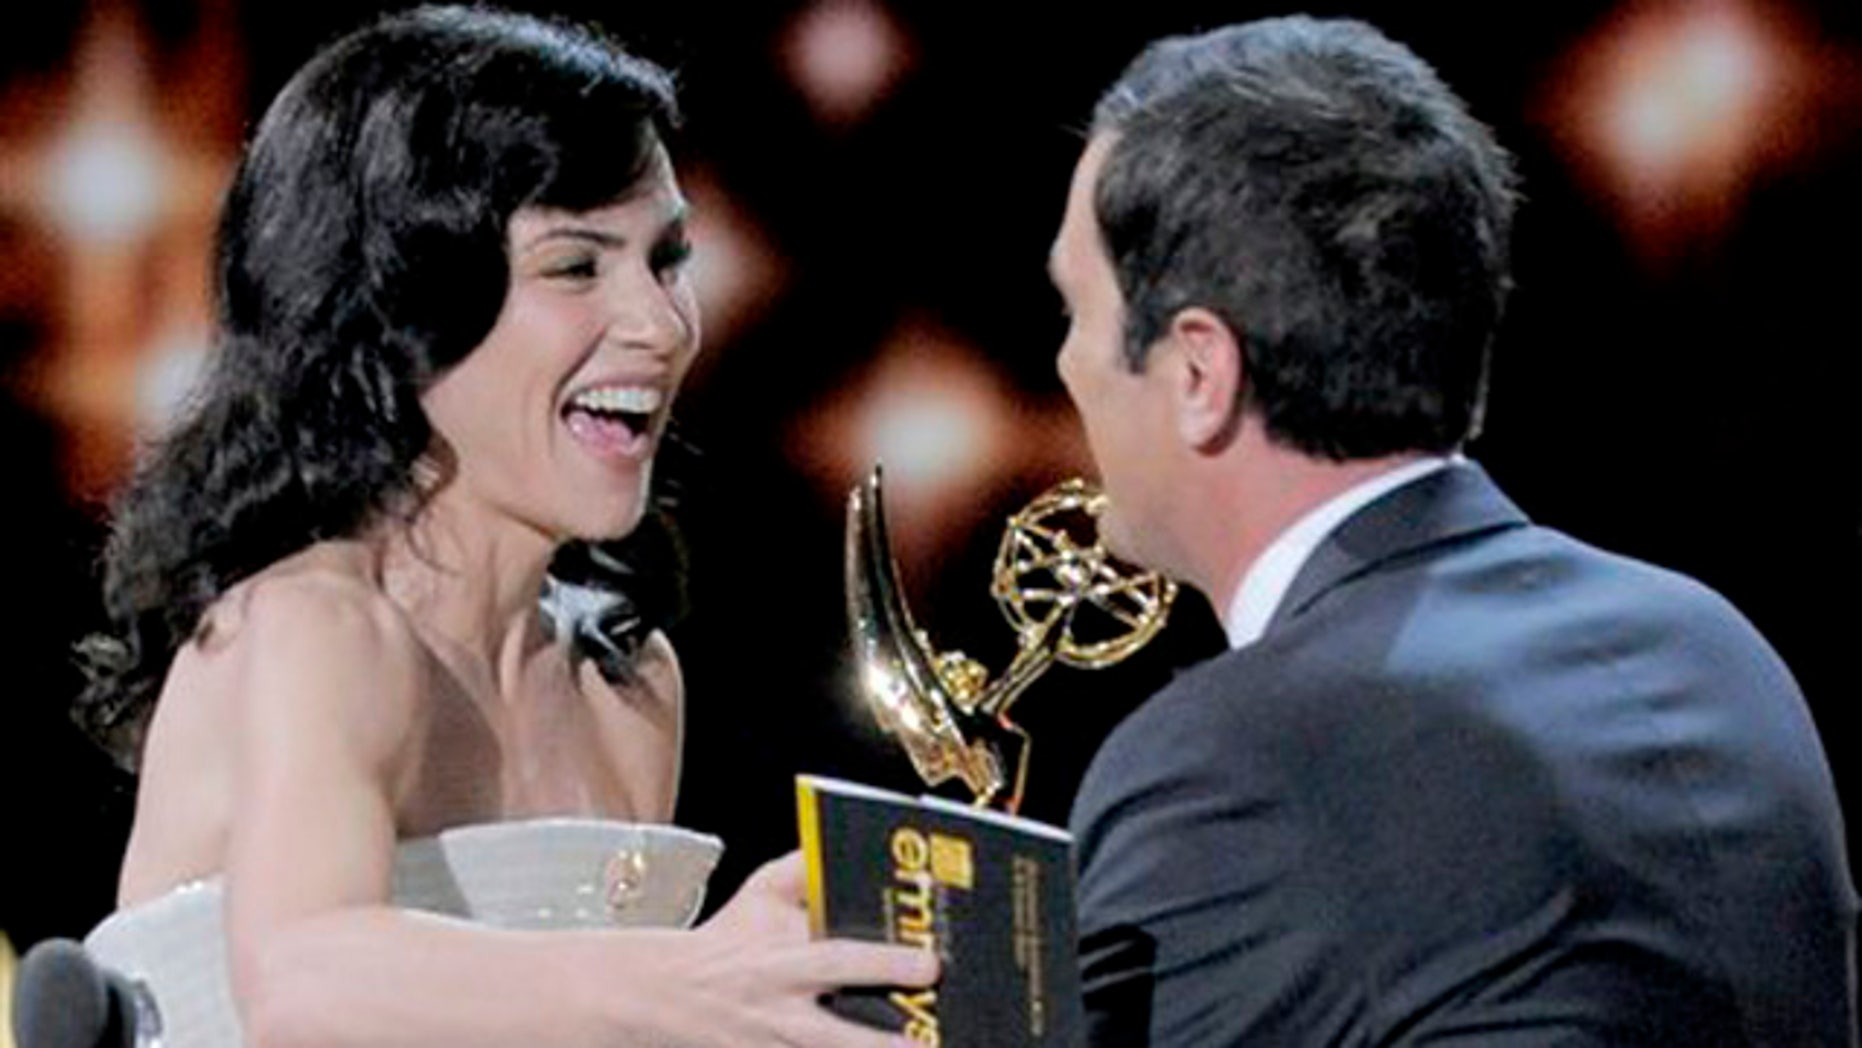 Ty Burrell, right, accepts the award for outstanding supporting actor in a comedy series for Modern Family from presenter Julianna Margulies at the 63rd Primetime Emmy Awards on Sunday, Sept. 18, 2011 in Los Angeles.